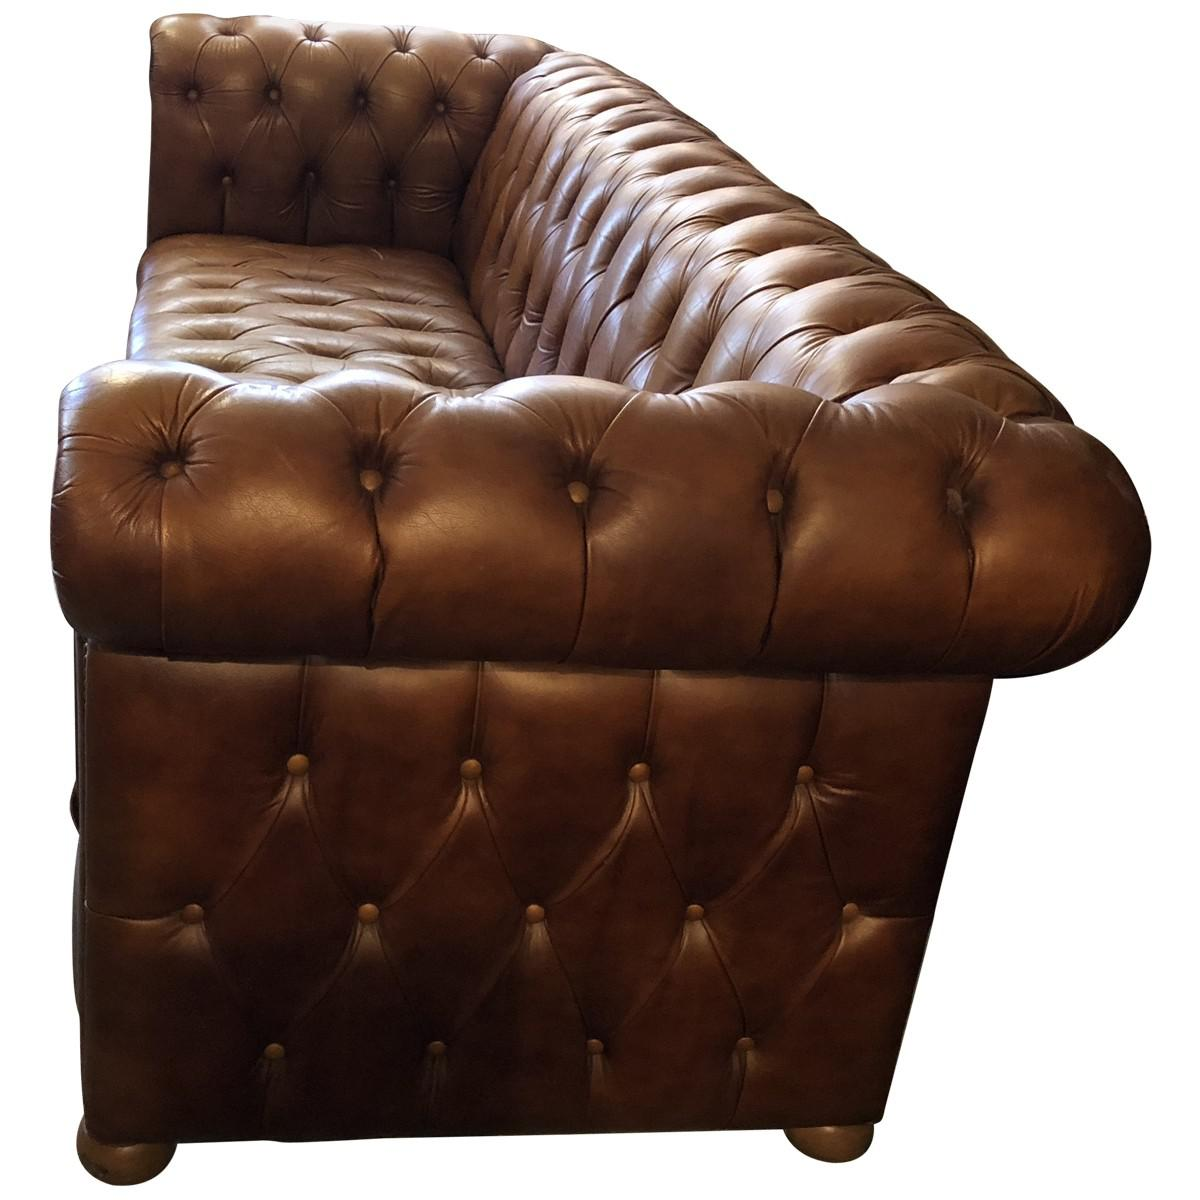 Ralph Lauren Tufted Leather Chesterfield Sofa Decorating Interior